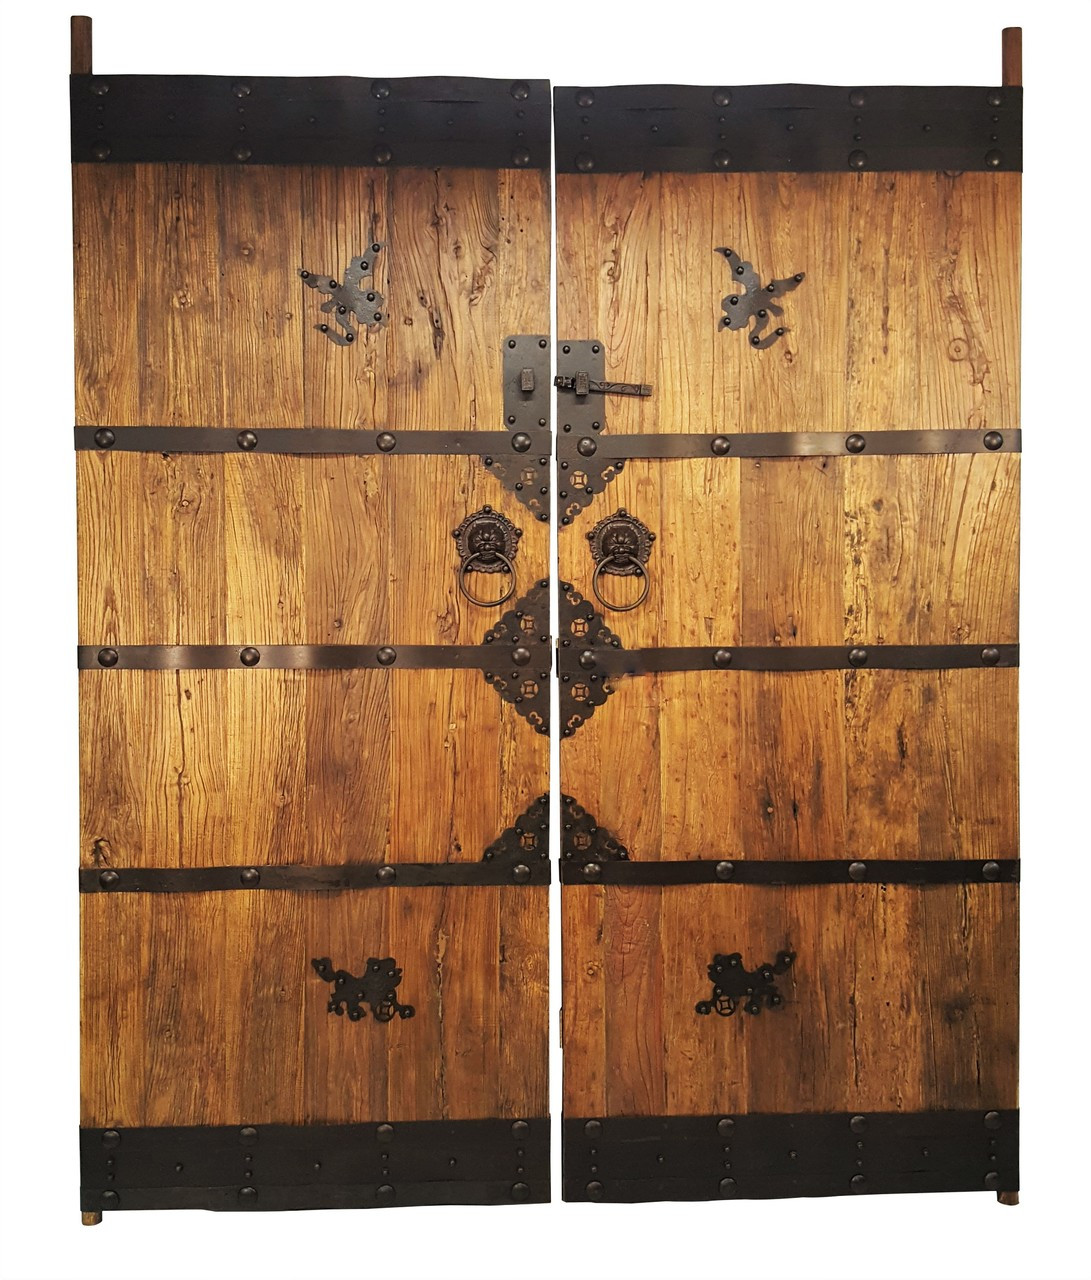 Image 1 - Antique Oriental Architectural Temple Doors With Hand Forged Iron